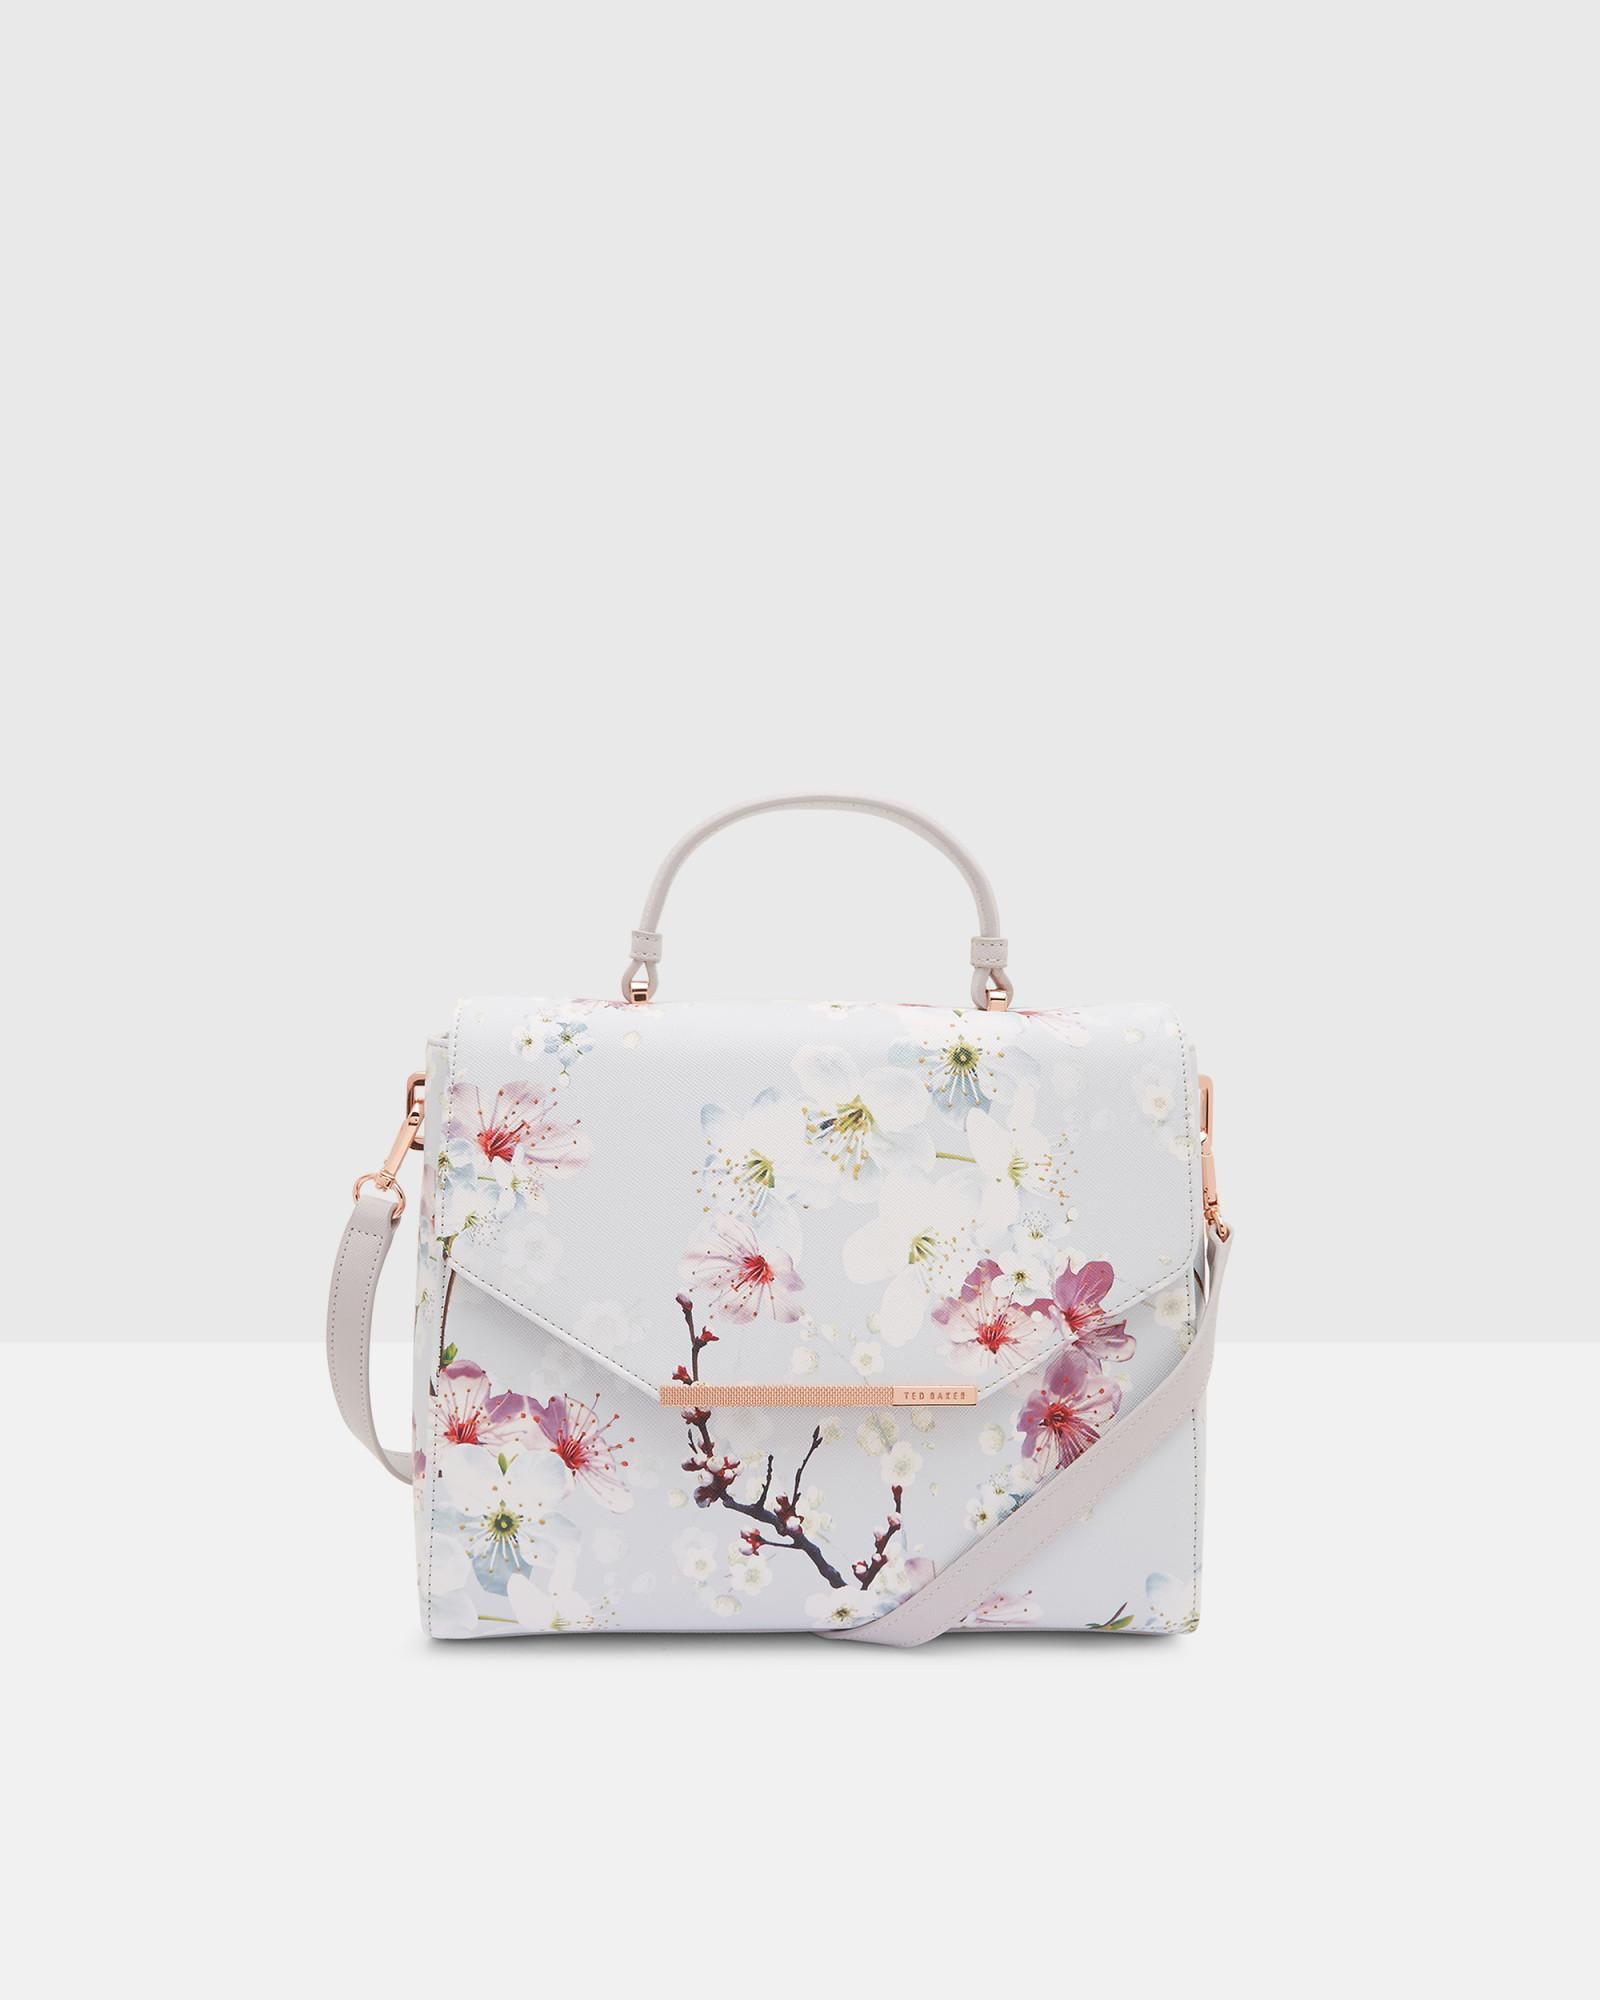 7634966e79fb Lyst - Ted Baker Oriental Blossom Tote Bag in Gray